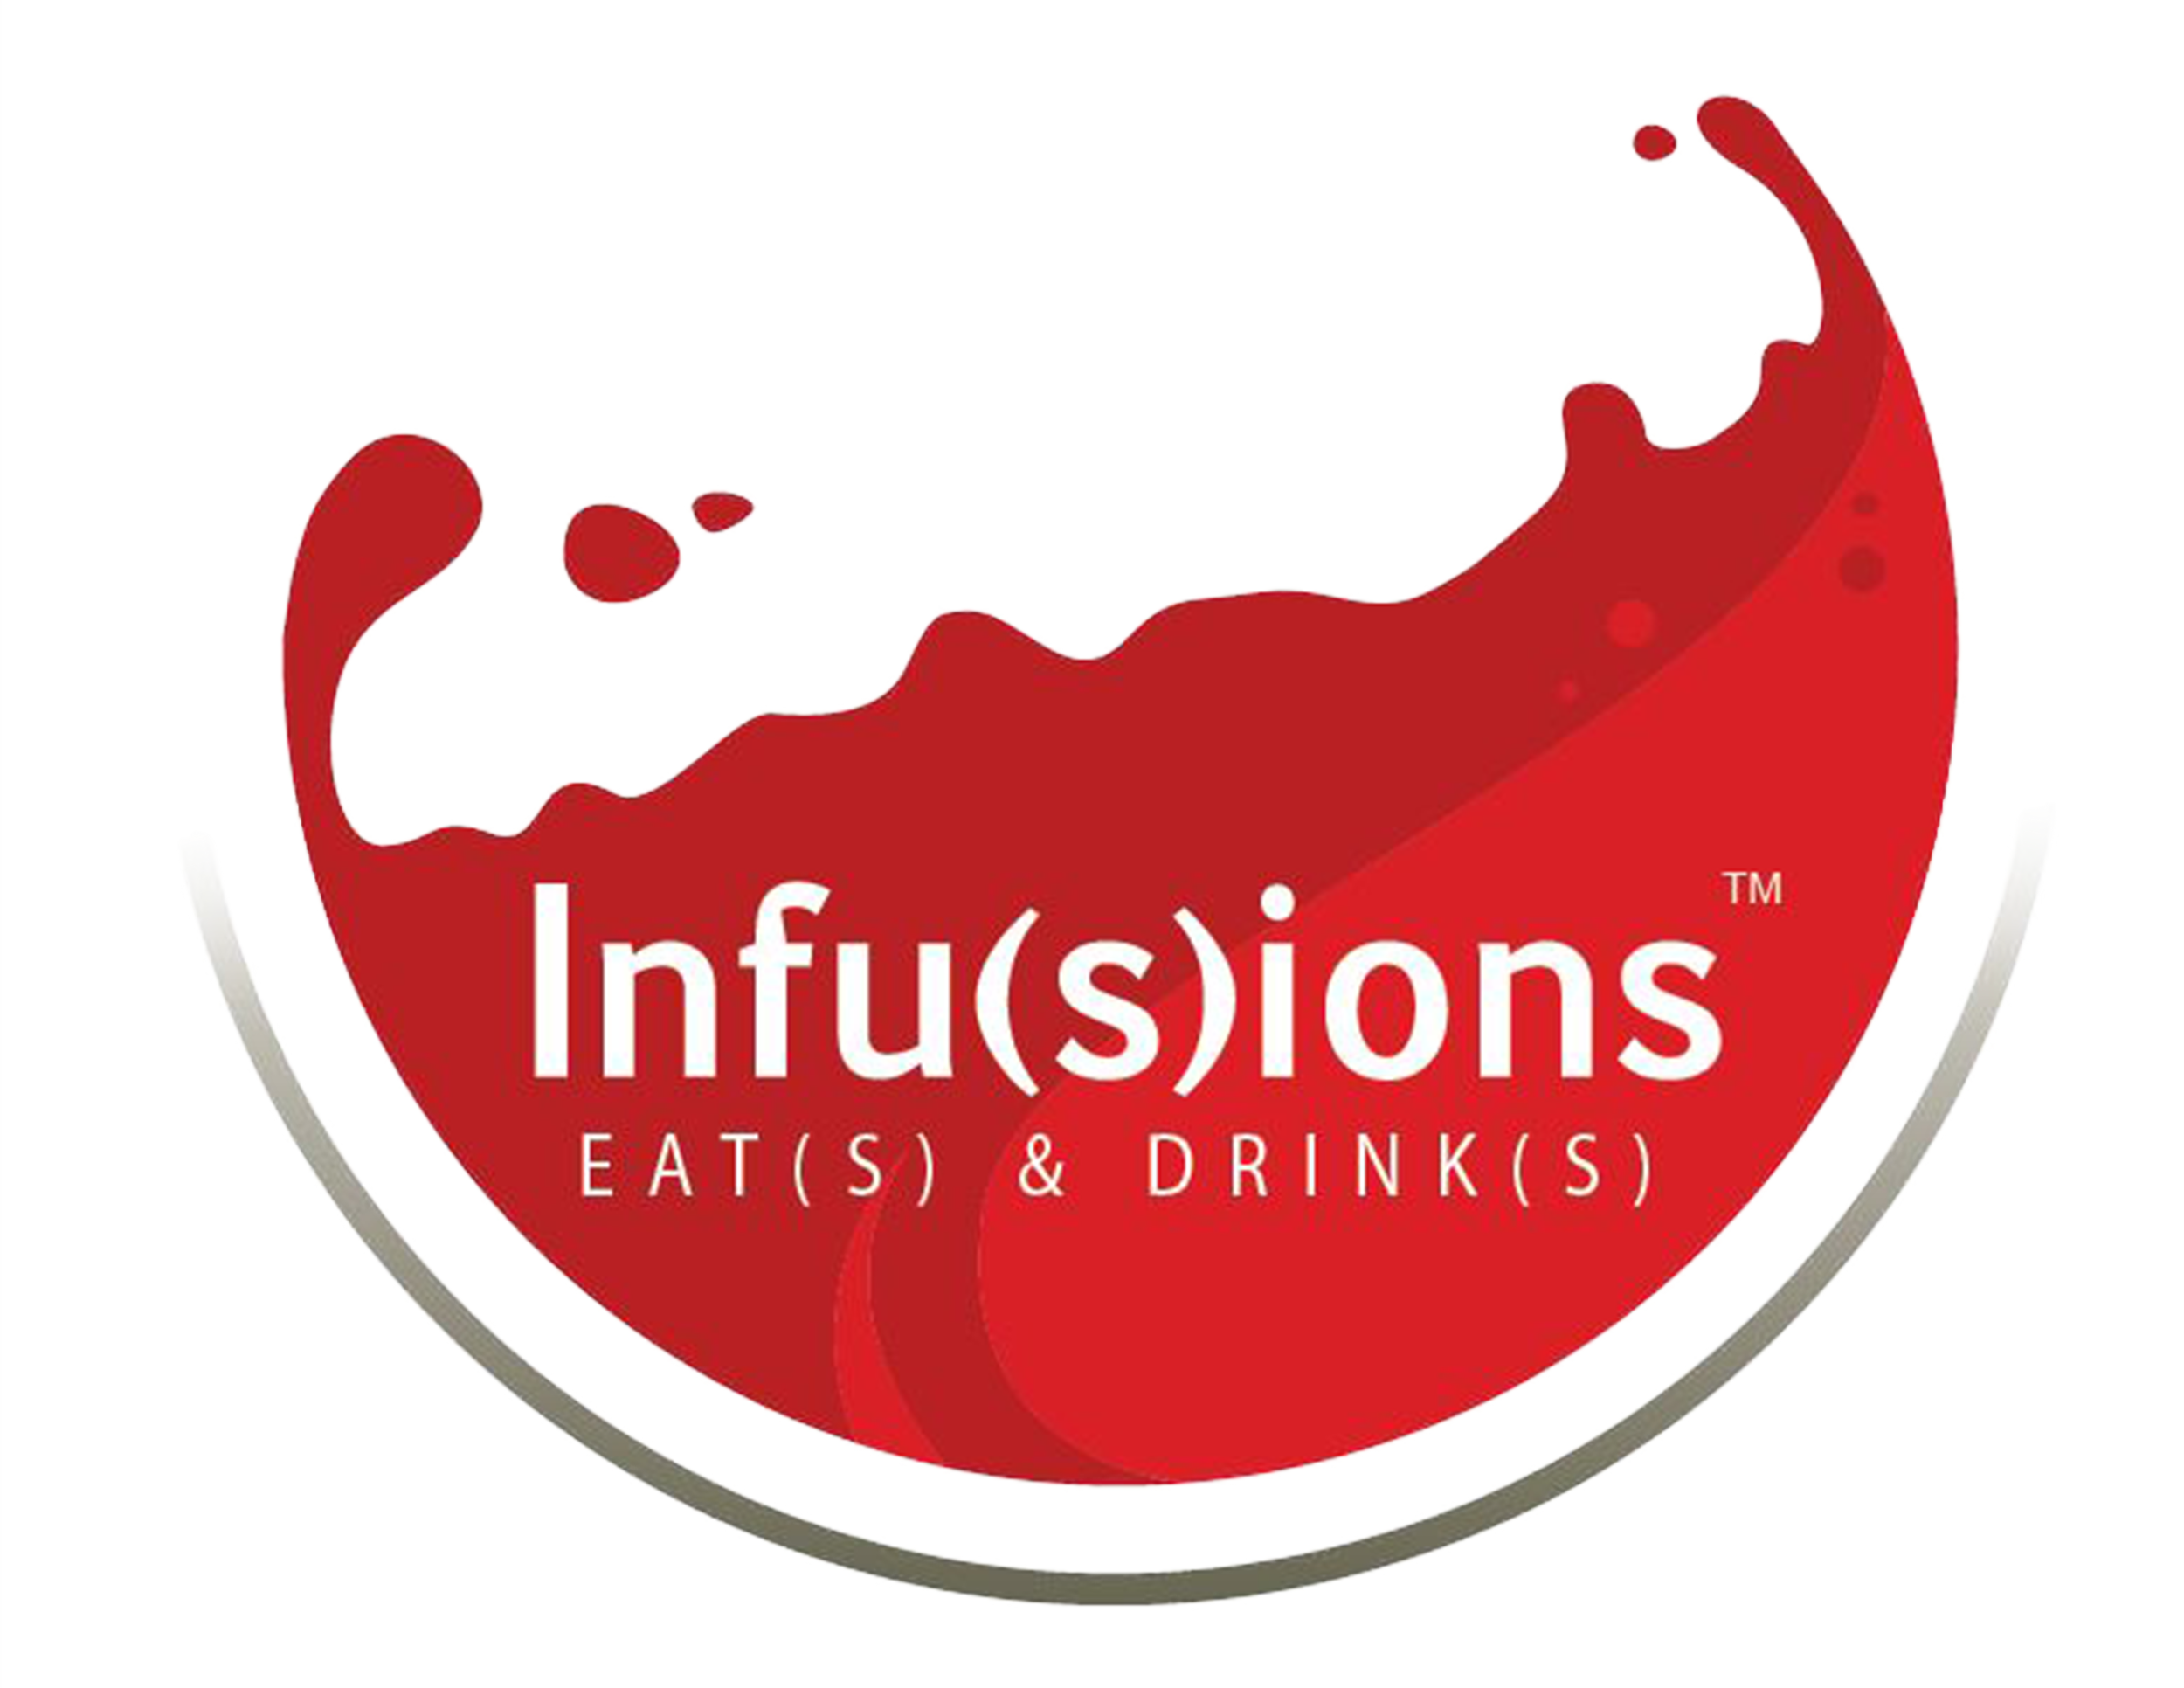 Infusions Eats & Drinks